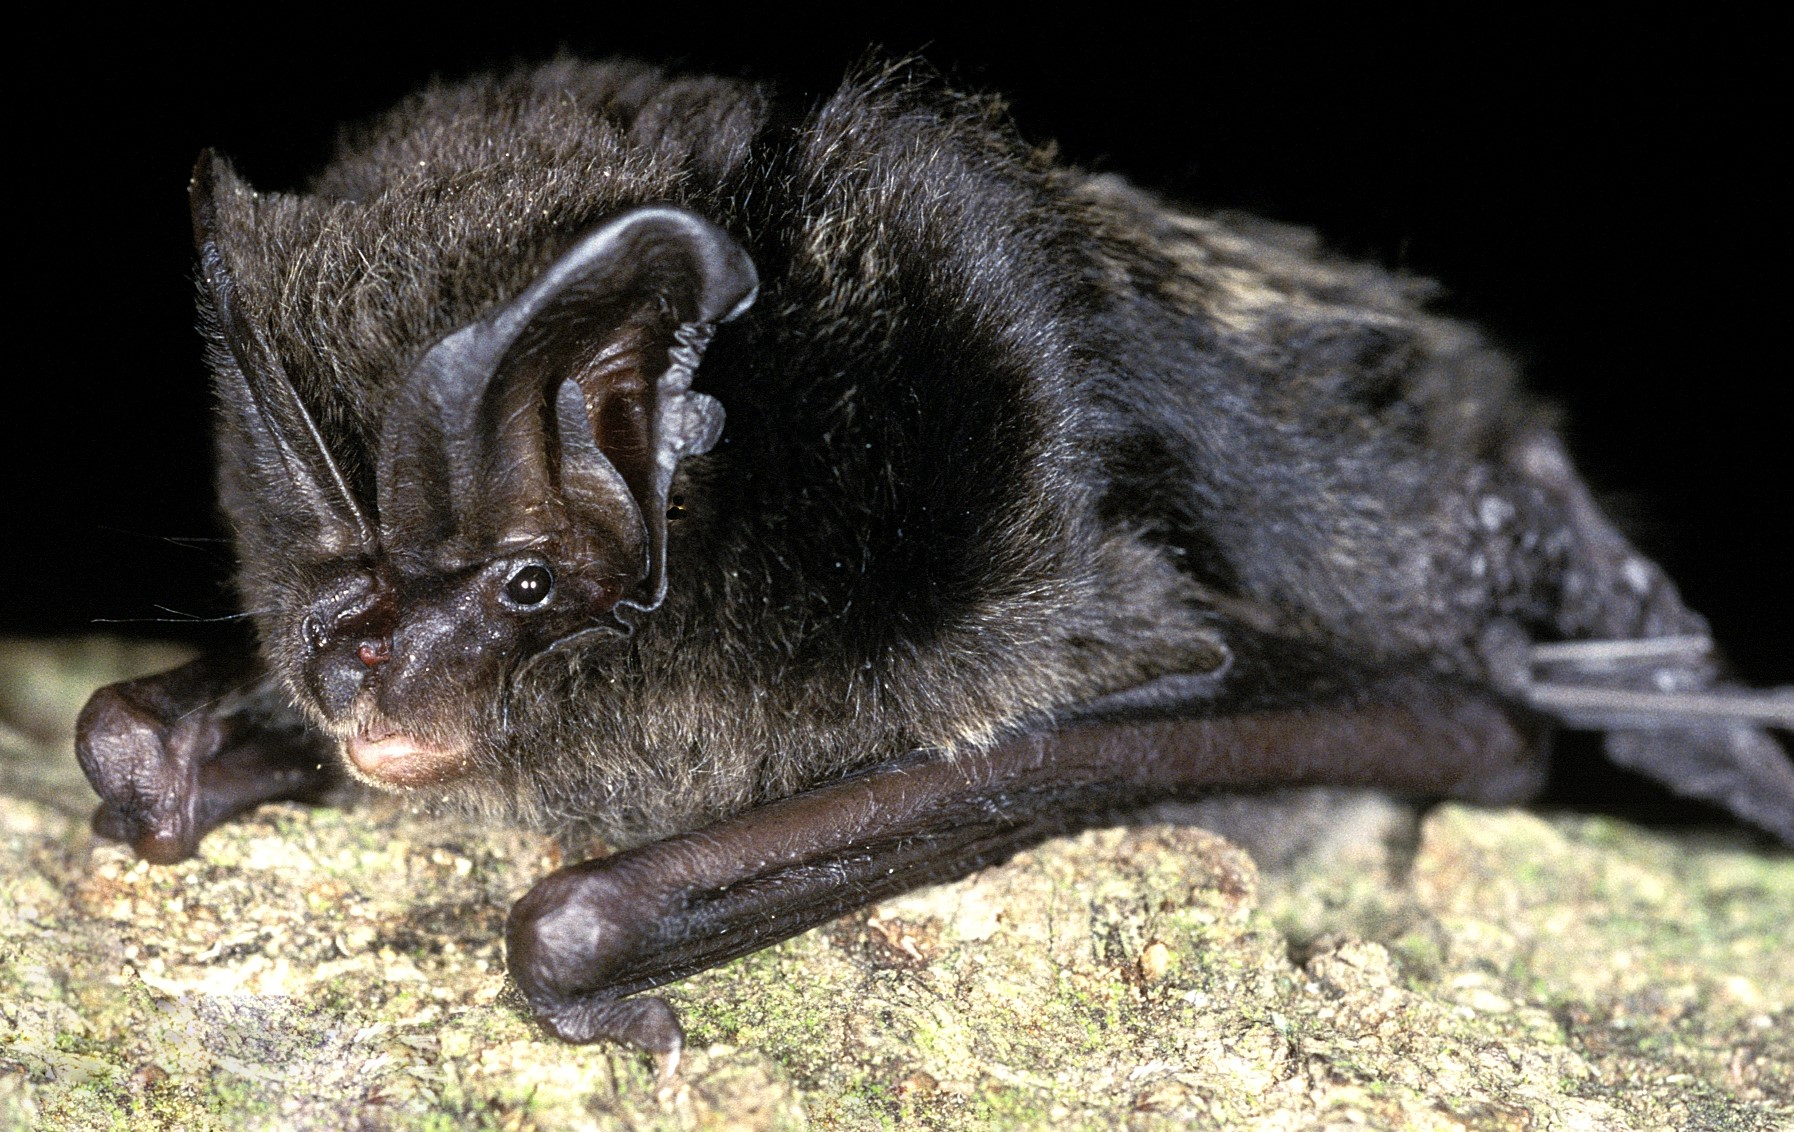 9 for 90: Barbastelle bat